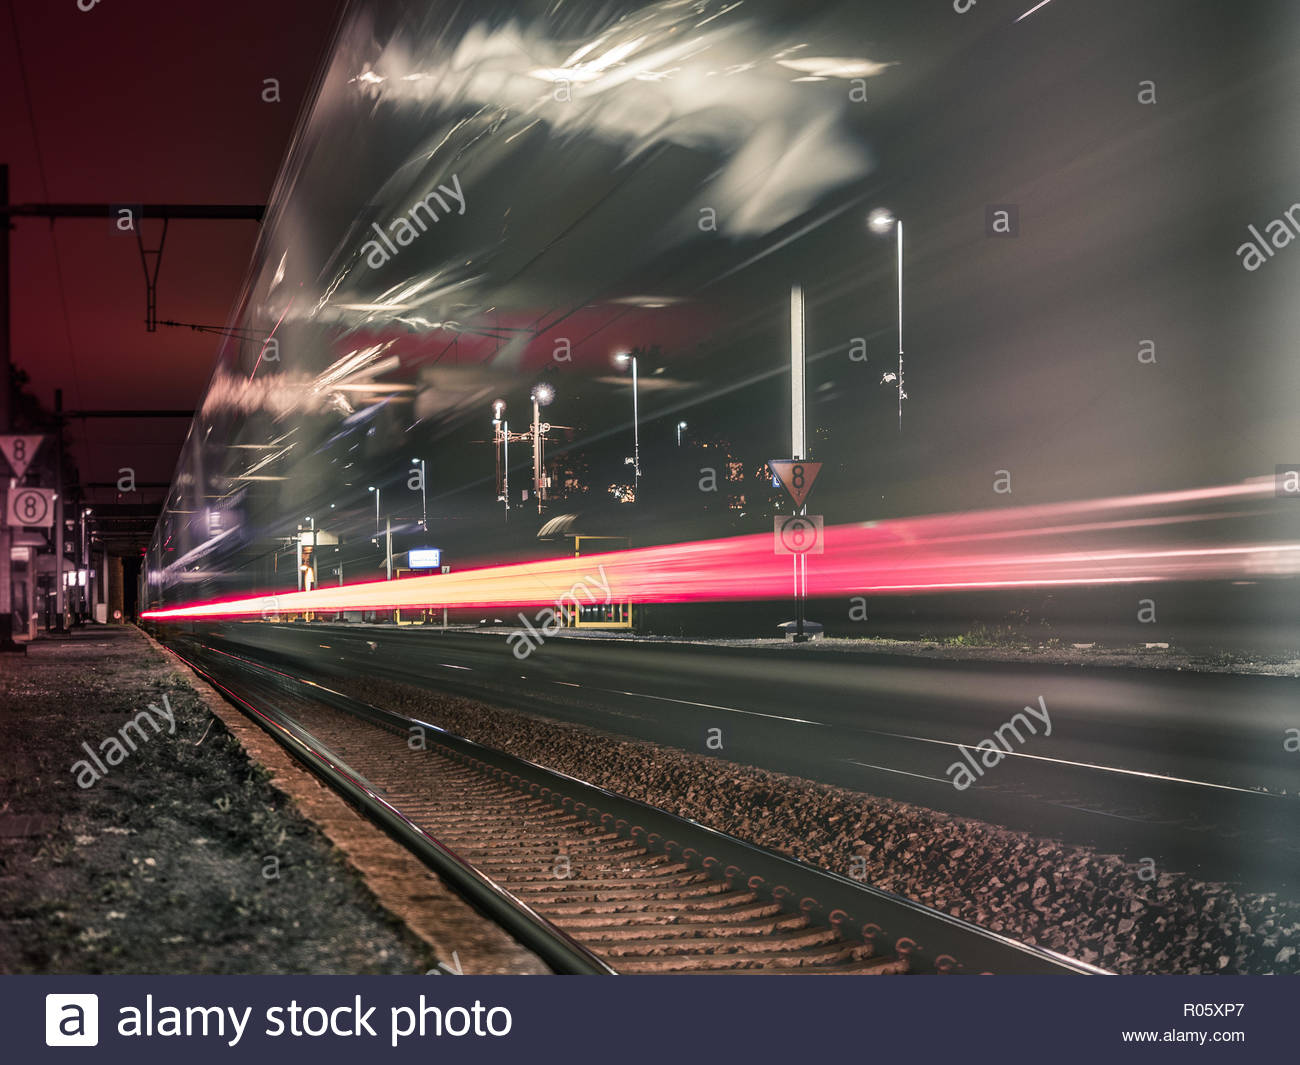 Long exposure shot of a passenger train passing tru a train station at night. Impression of  a train due to transparency, reflections and light trails - Stock Image